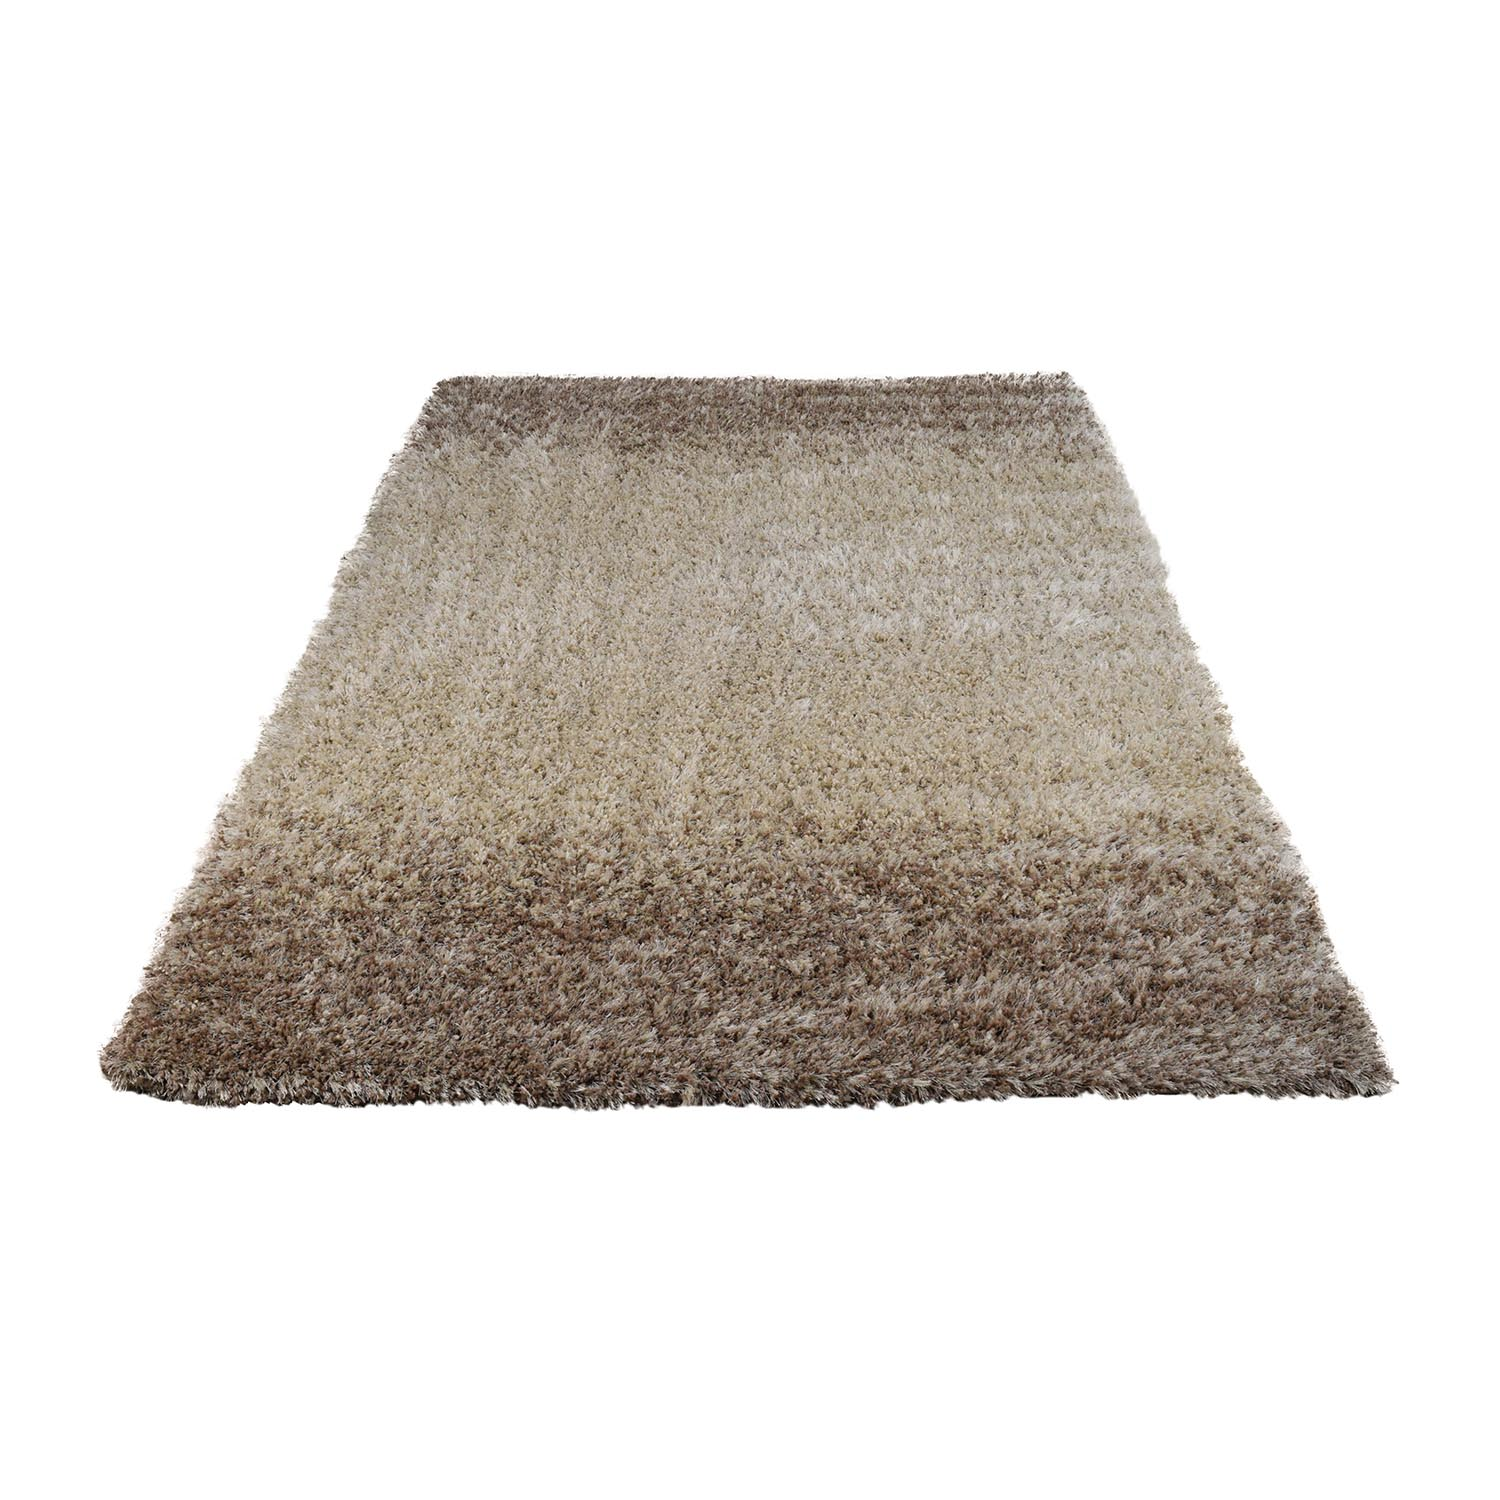 Home Depot Home Depot Sizzle Beige Shag Carpet on sale